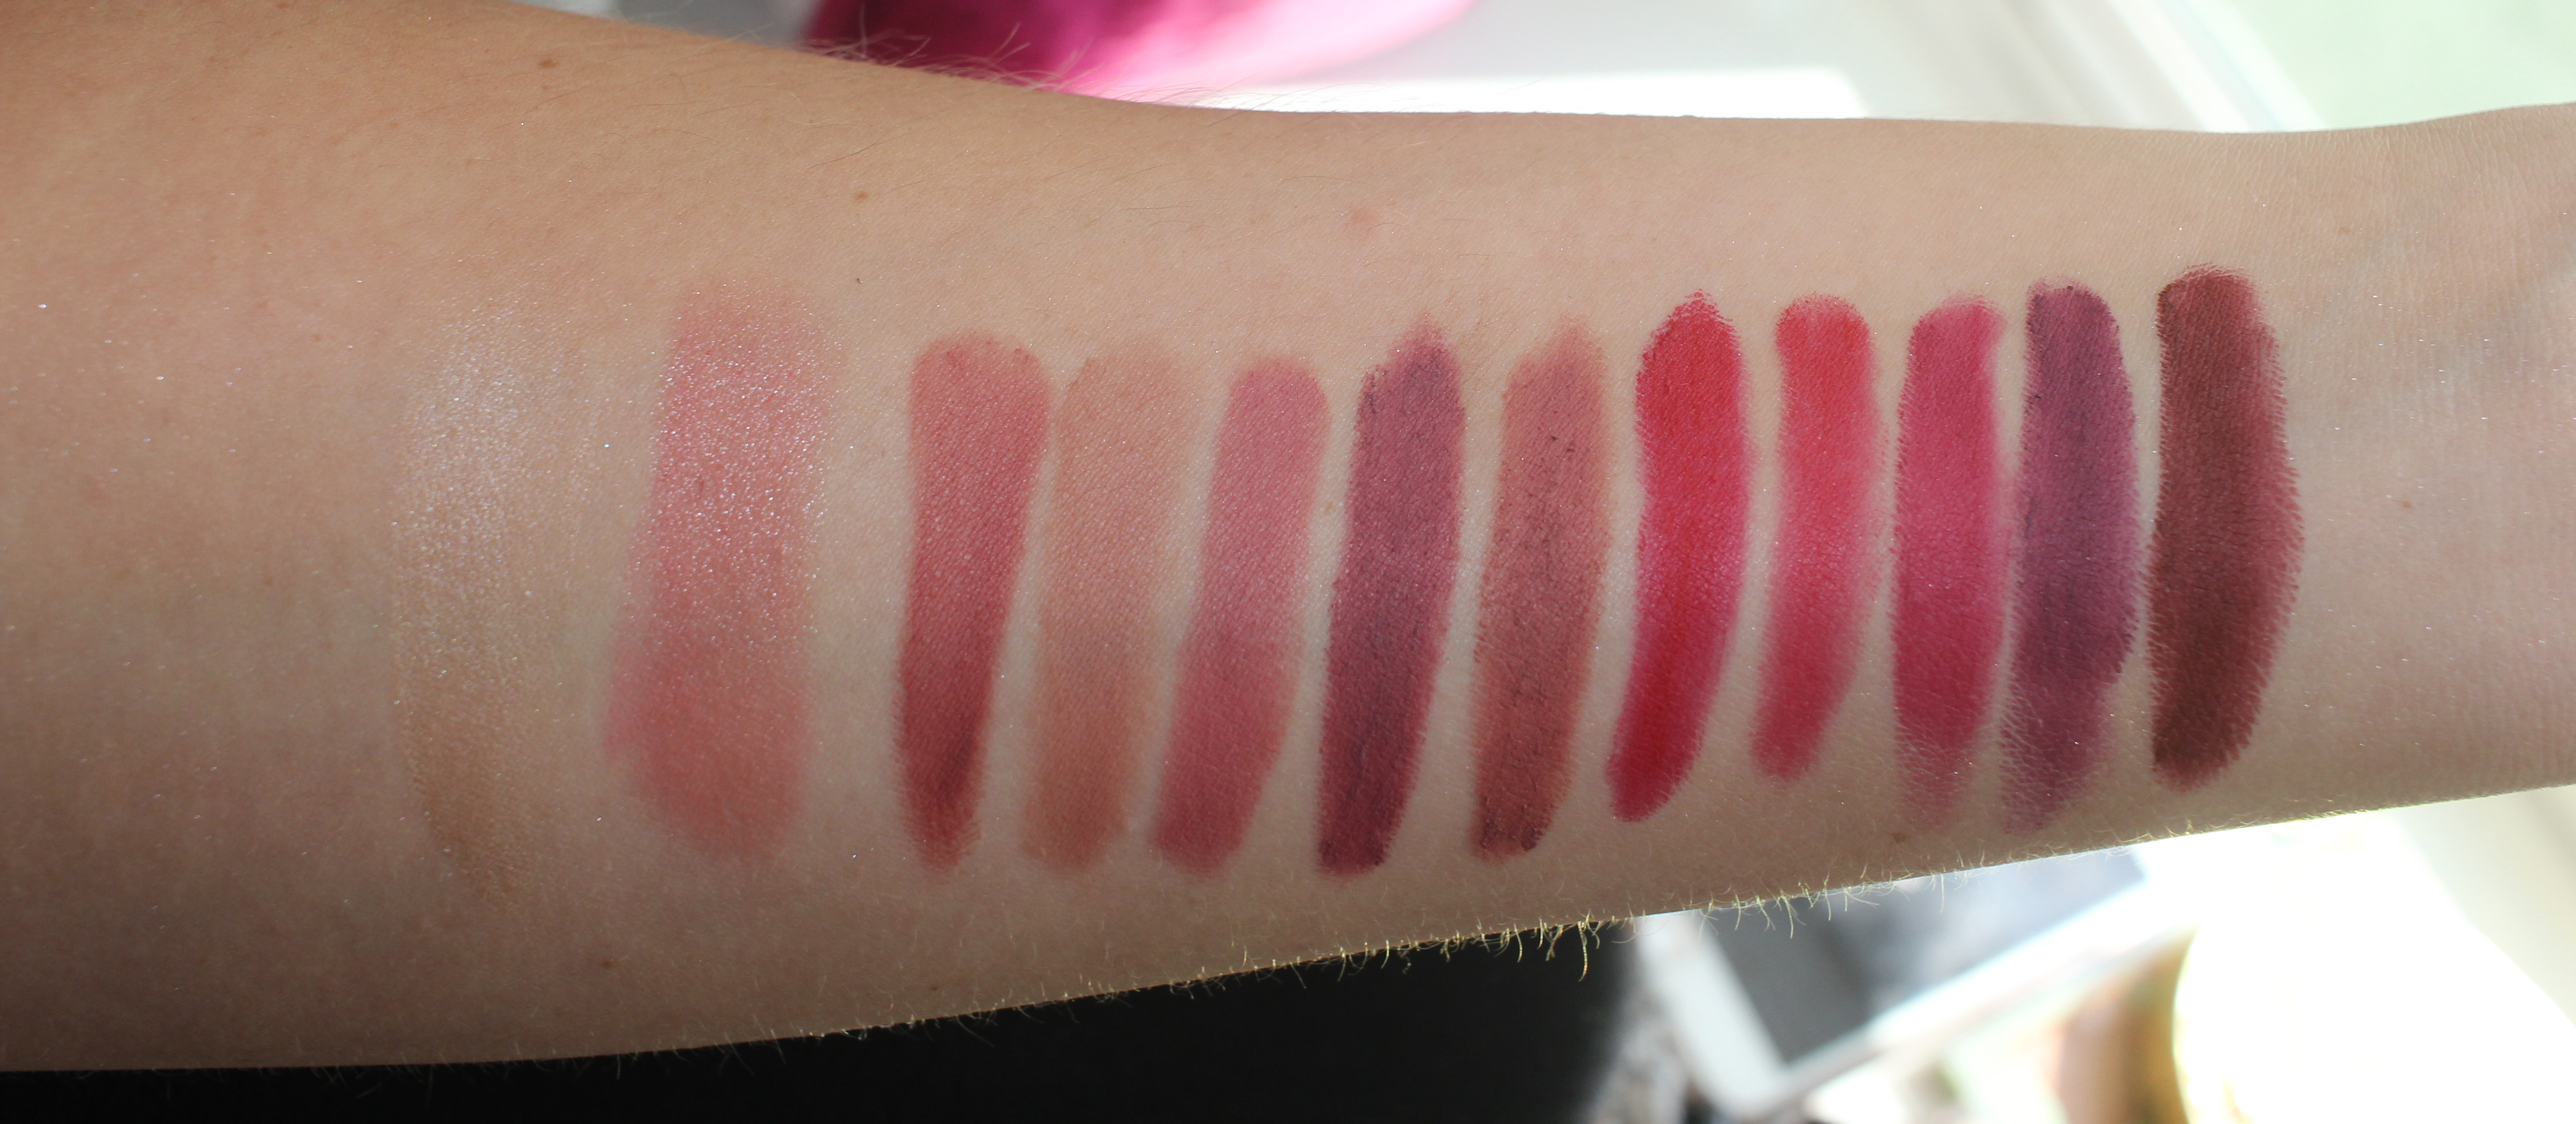 Buxom Pillow Pout Lip Powder swatches: Soft Whisper, Cuddle Me, Darling Dolly, So Spicy, Cozy Up, Kiss Me, Turn Me On, Spoil Me, Want You, Seduce Me